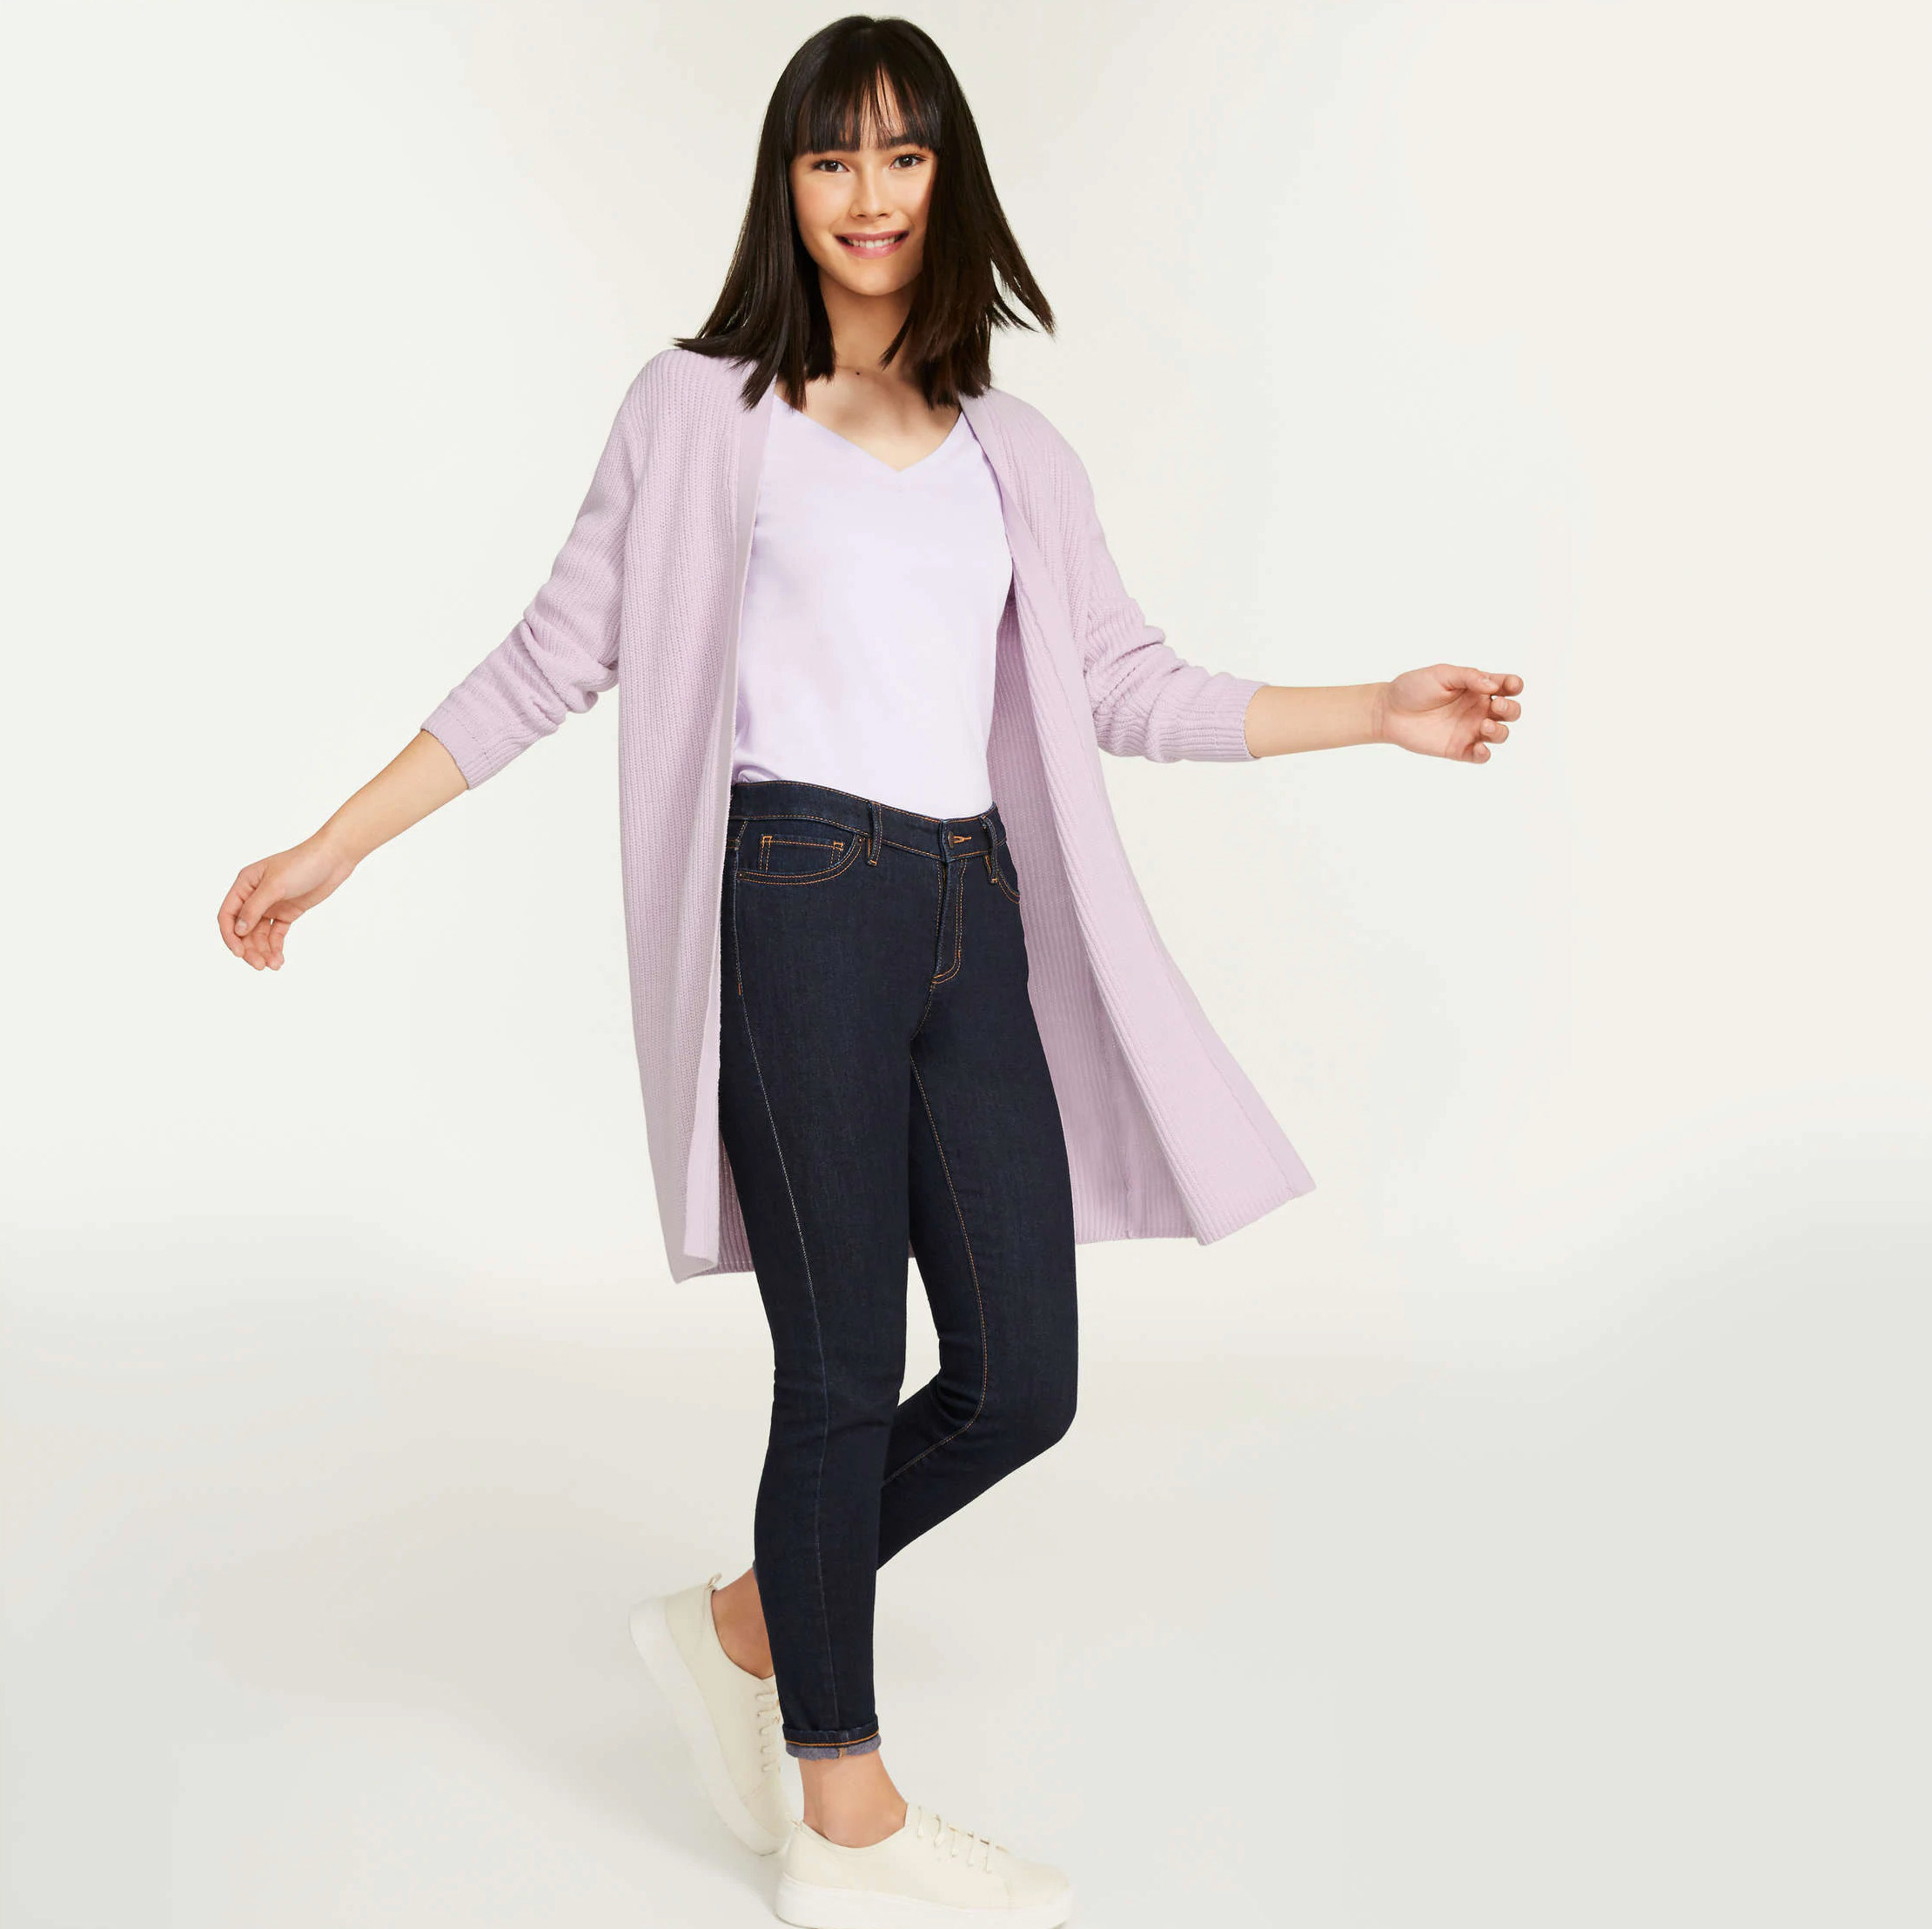 A person wearing a long cardigan over a T-shirt and jeans